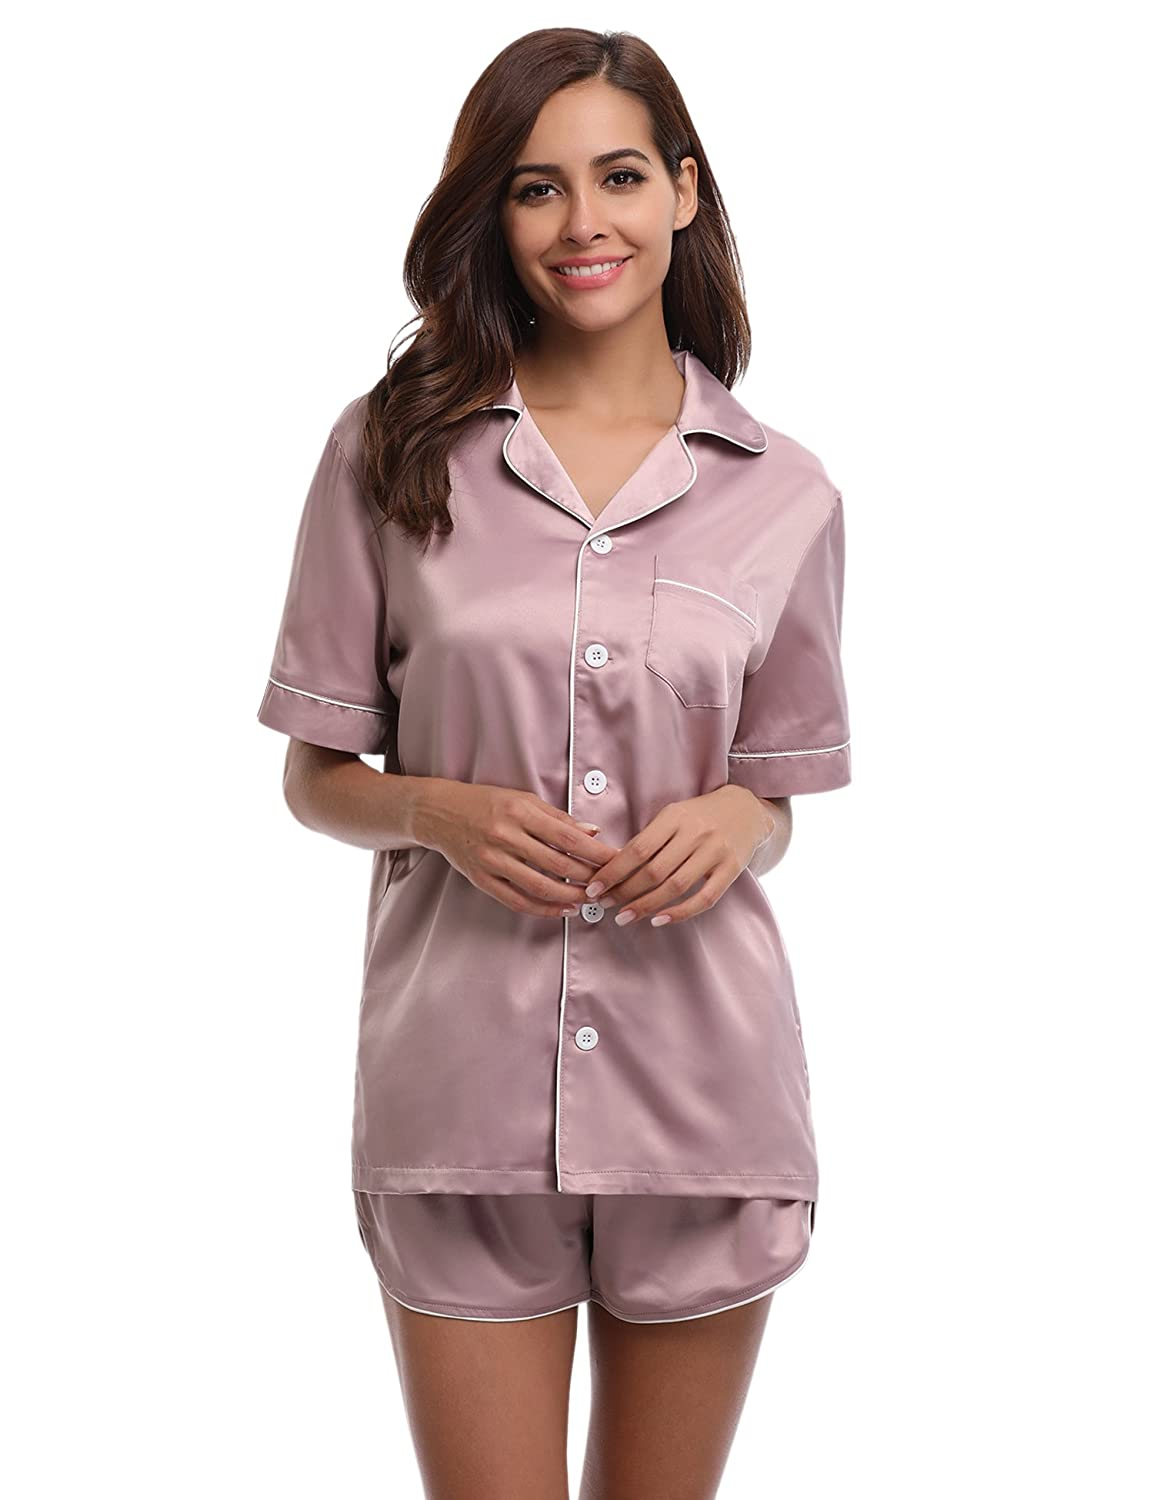 867a6938de9 ... quality of workmanship in Aibrou womens Pjs set. 【Pajamas Style and  Materials】Satin pajamas womens featuring a short-sleeve top and matching  shorts.